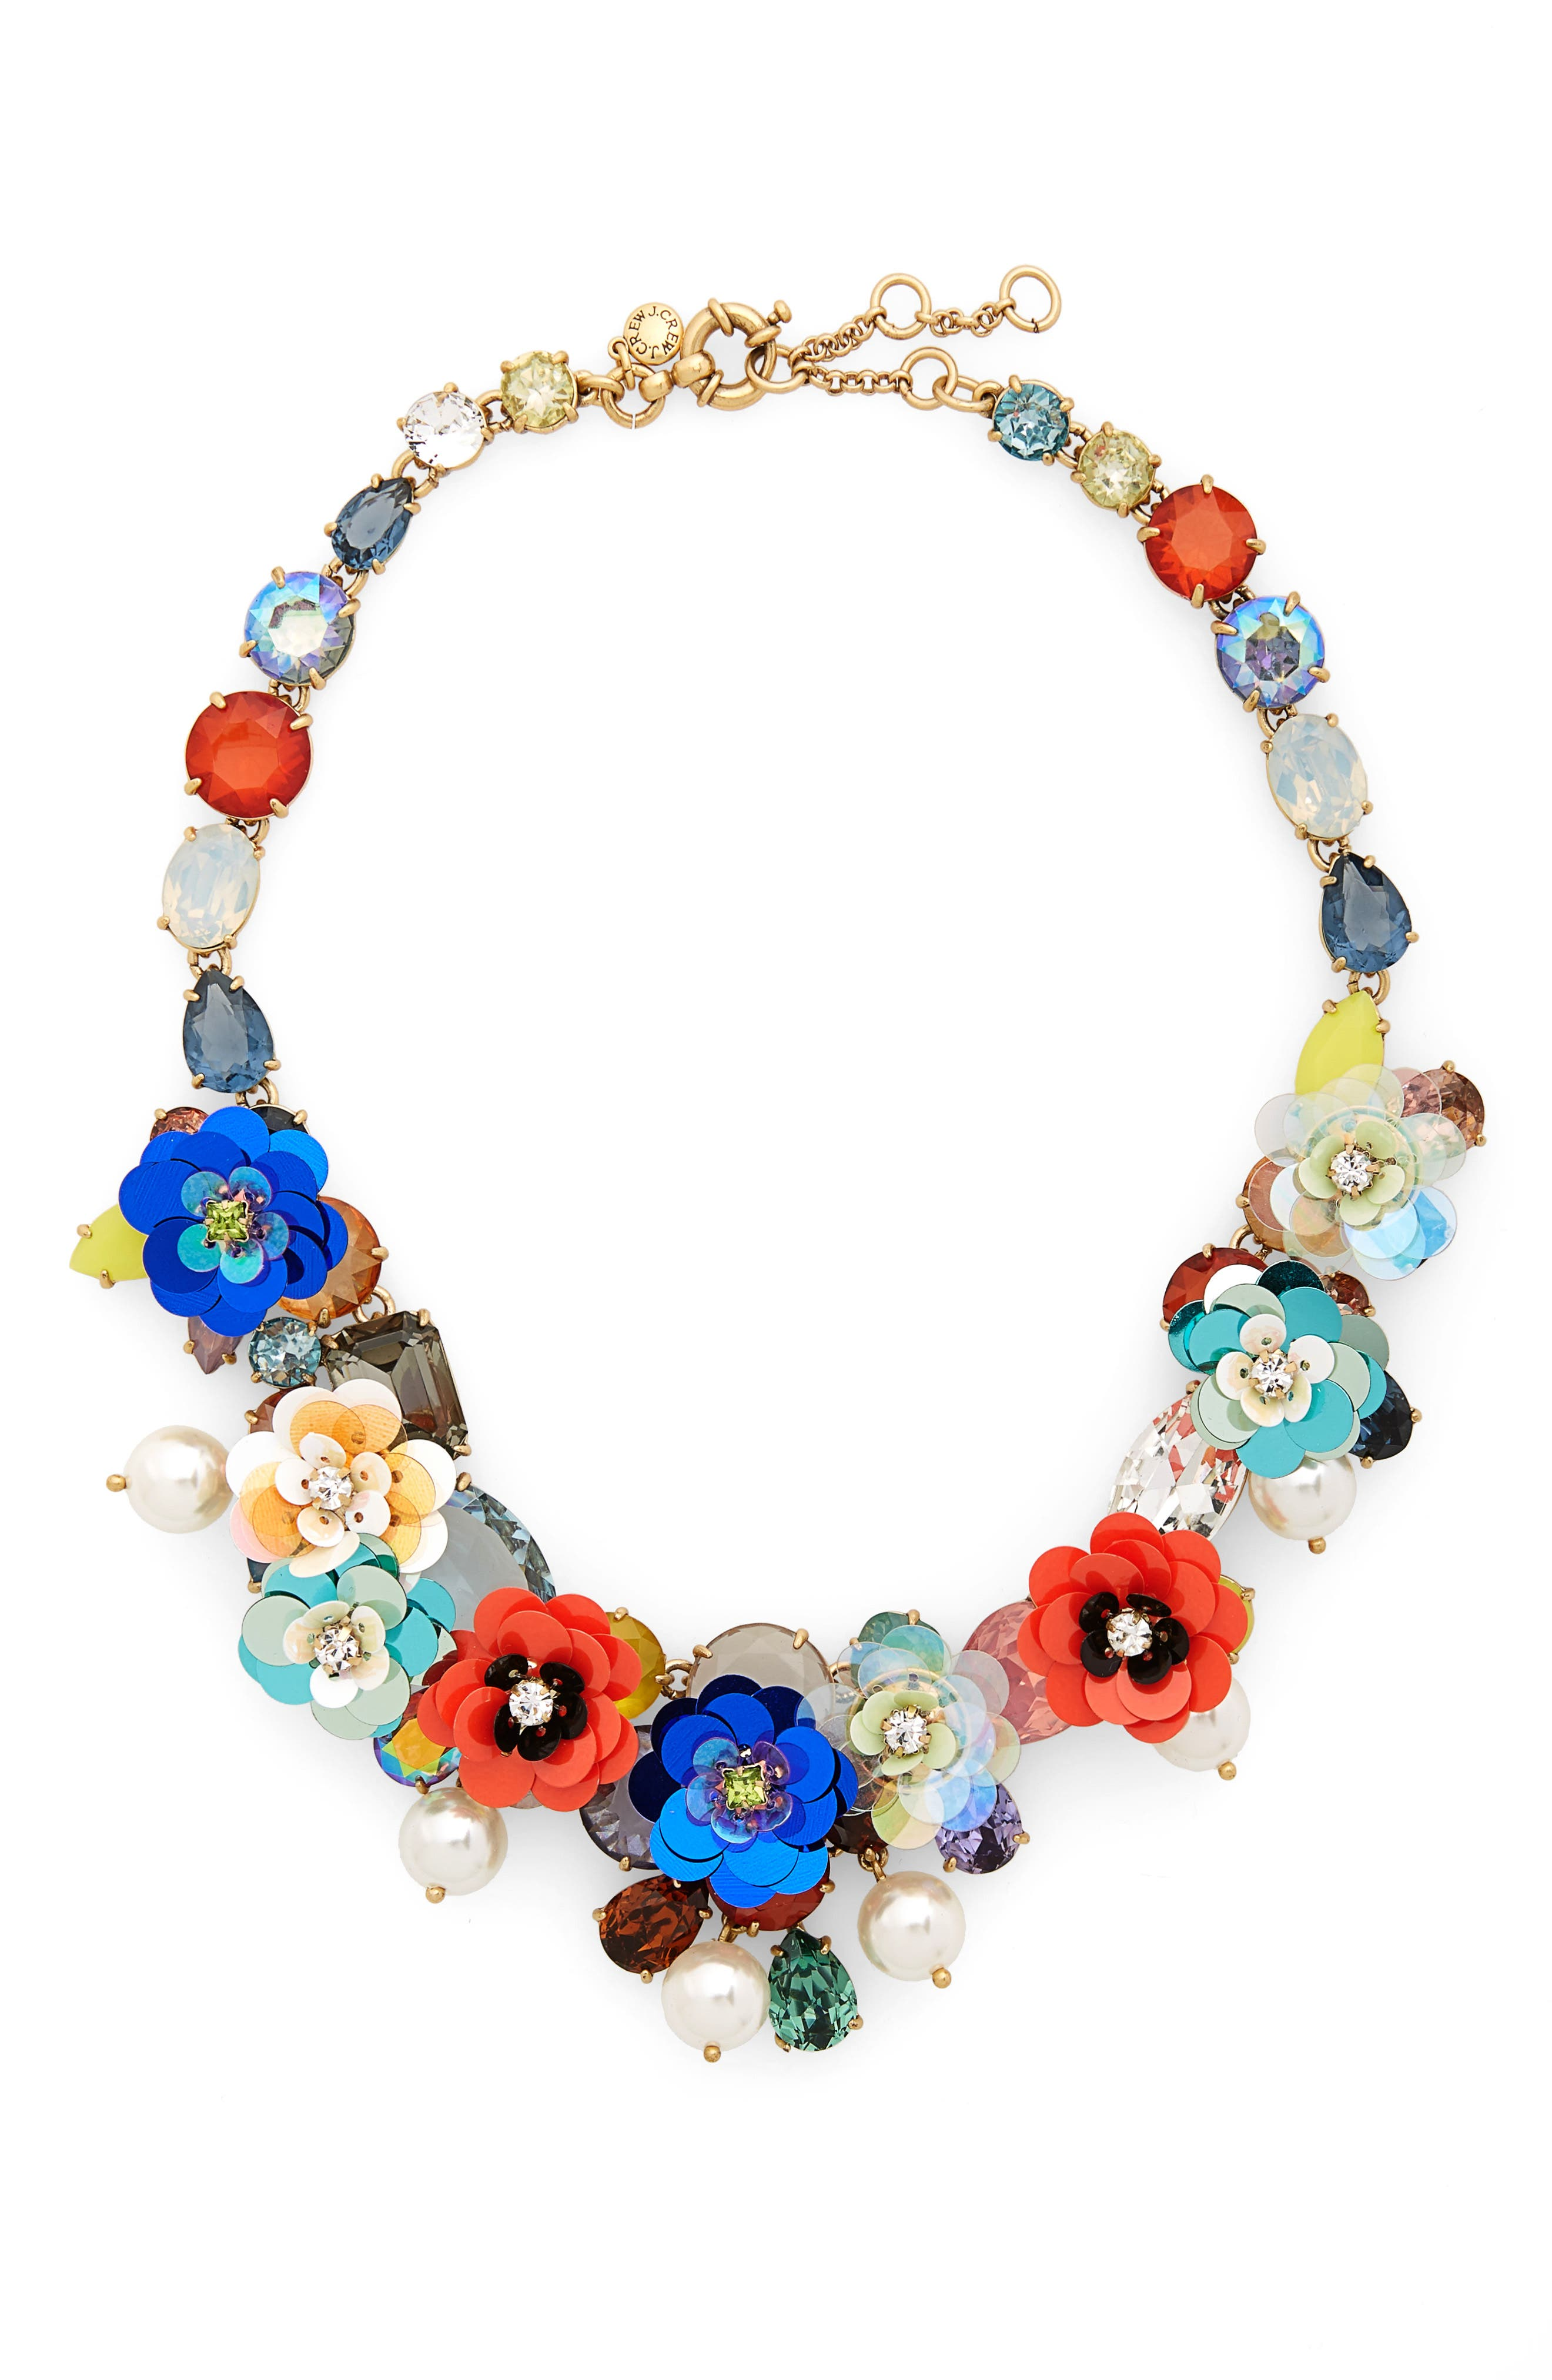 Crystal & Sequin Wreath Necklace,                             Main thumbnail 1, color,                             400